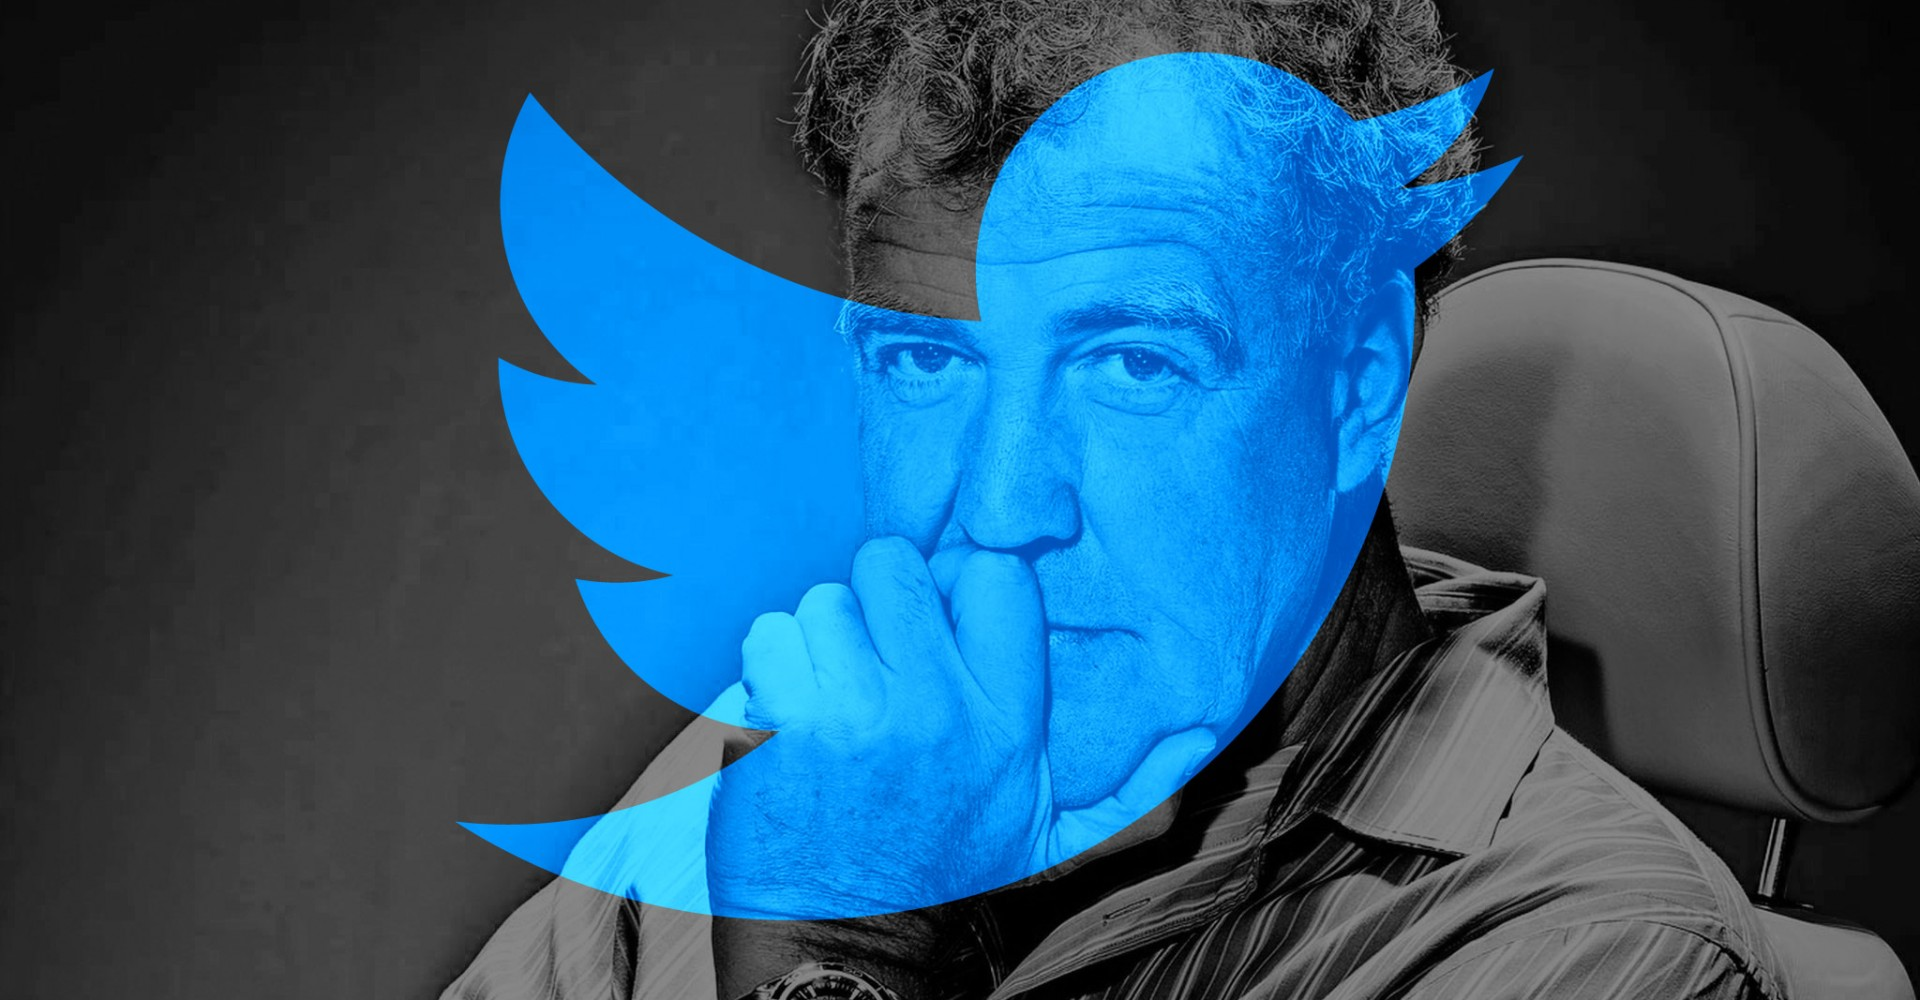 13 Tweets On Clarkson That Sum Up The Internet's Reaction